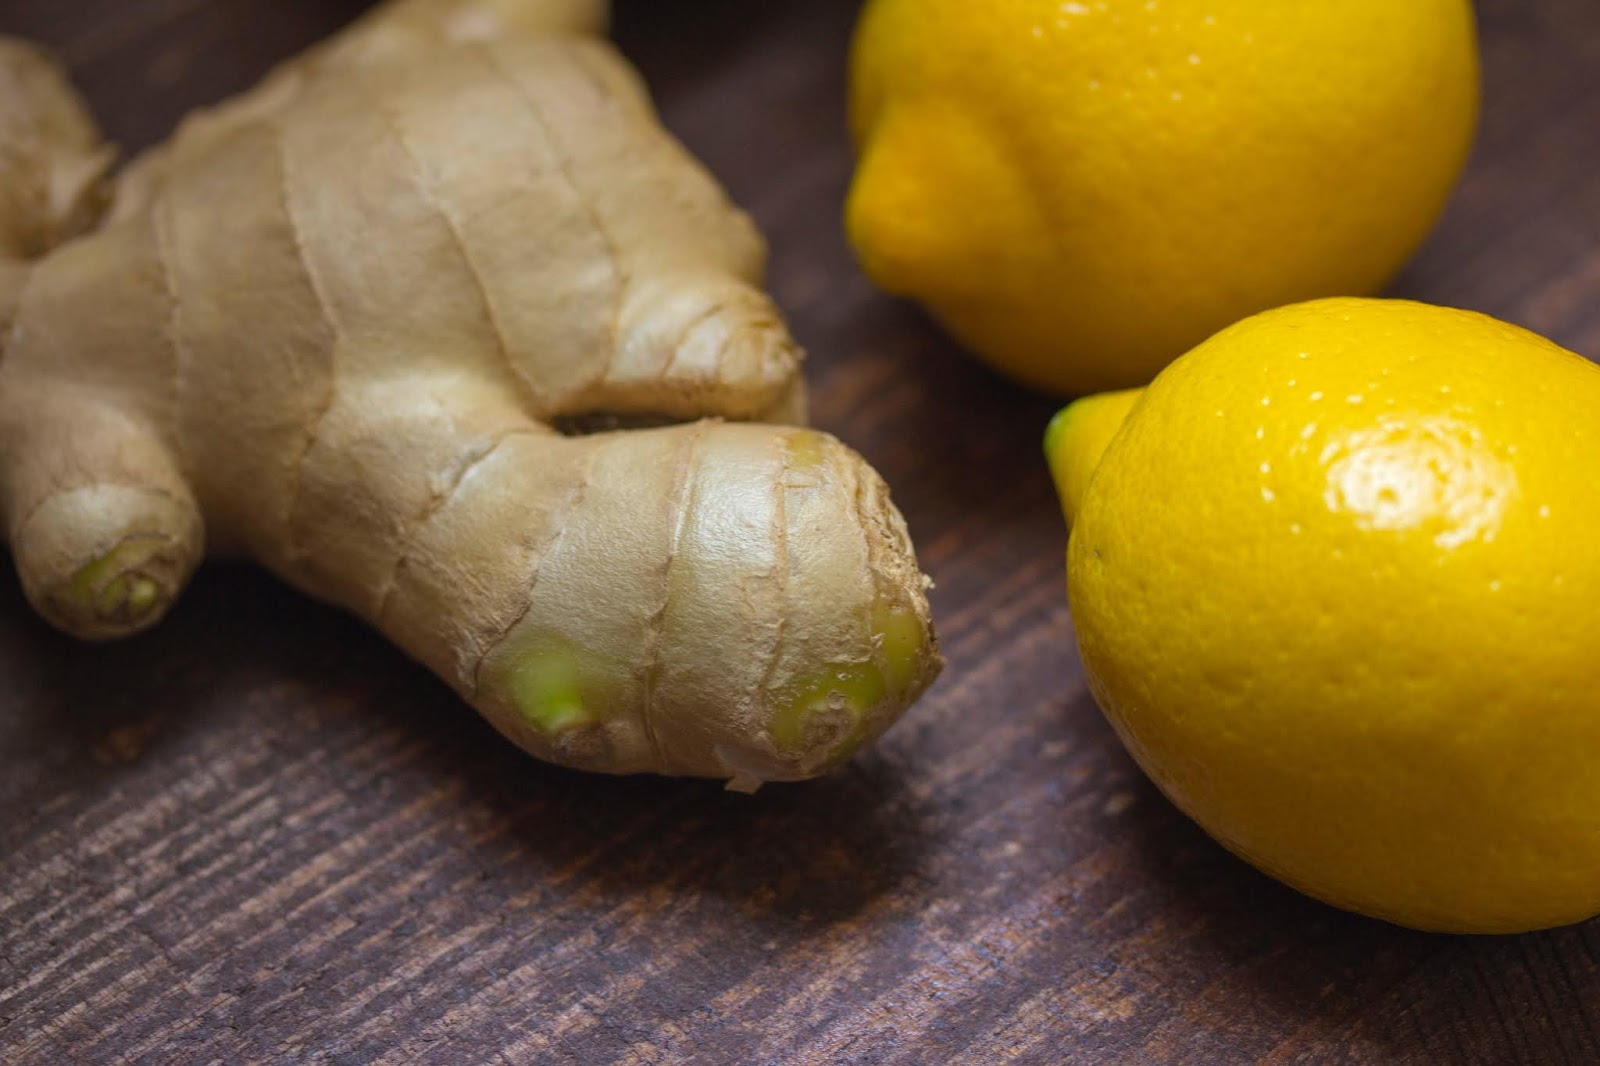 Best Ways To Help Reduce Nausea - Ginger